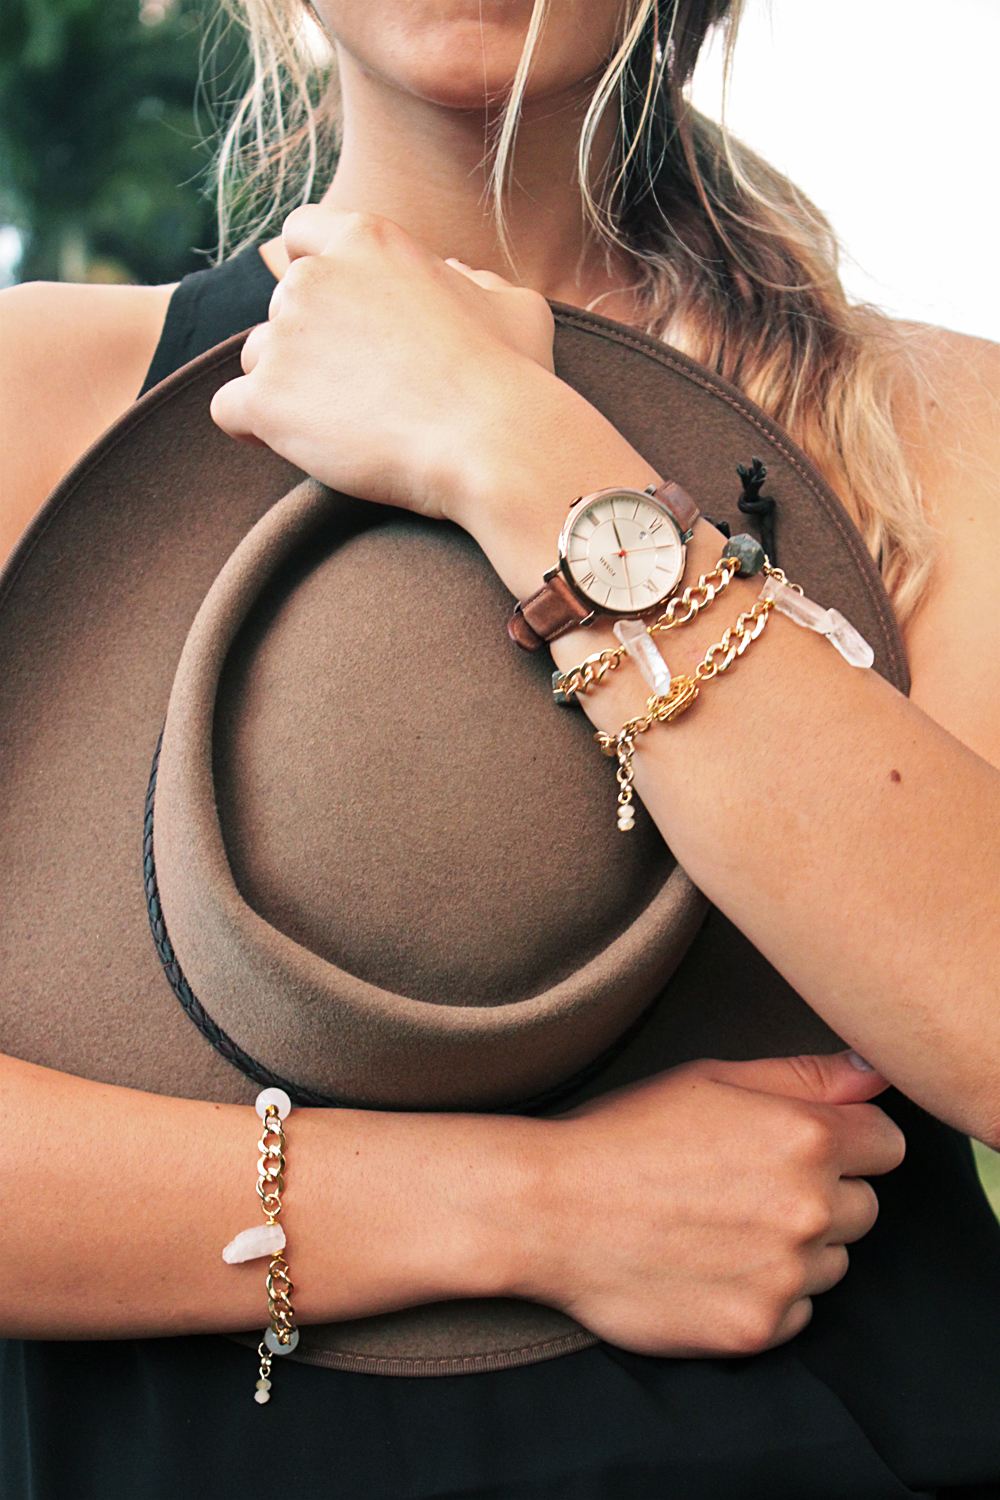 ENARMOUR Bracelets styled with the  Jacqueline  Fossil watch and the  Pastoralist  Akubra hat